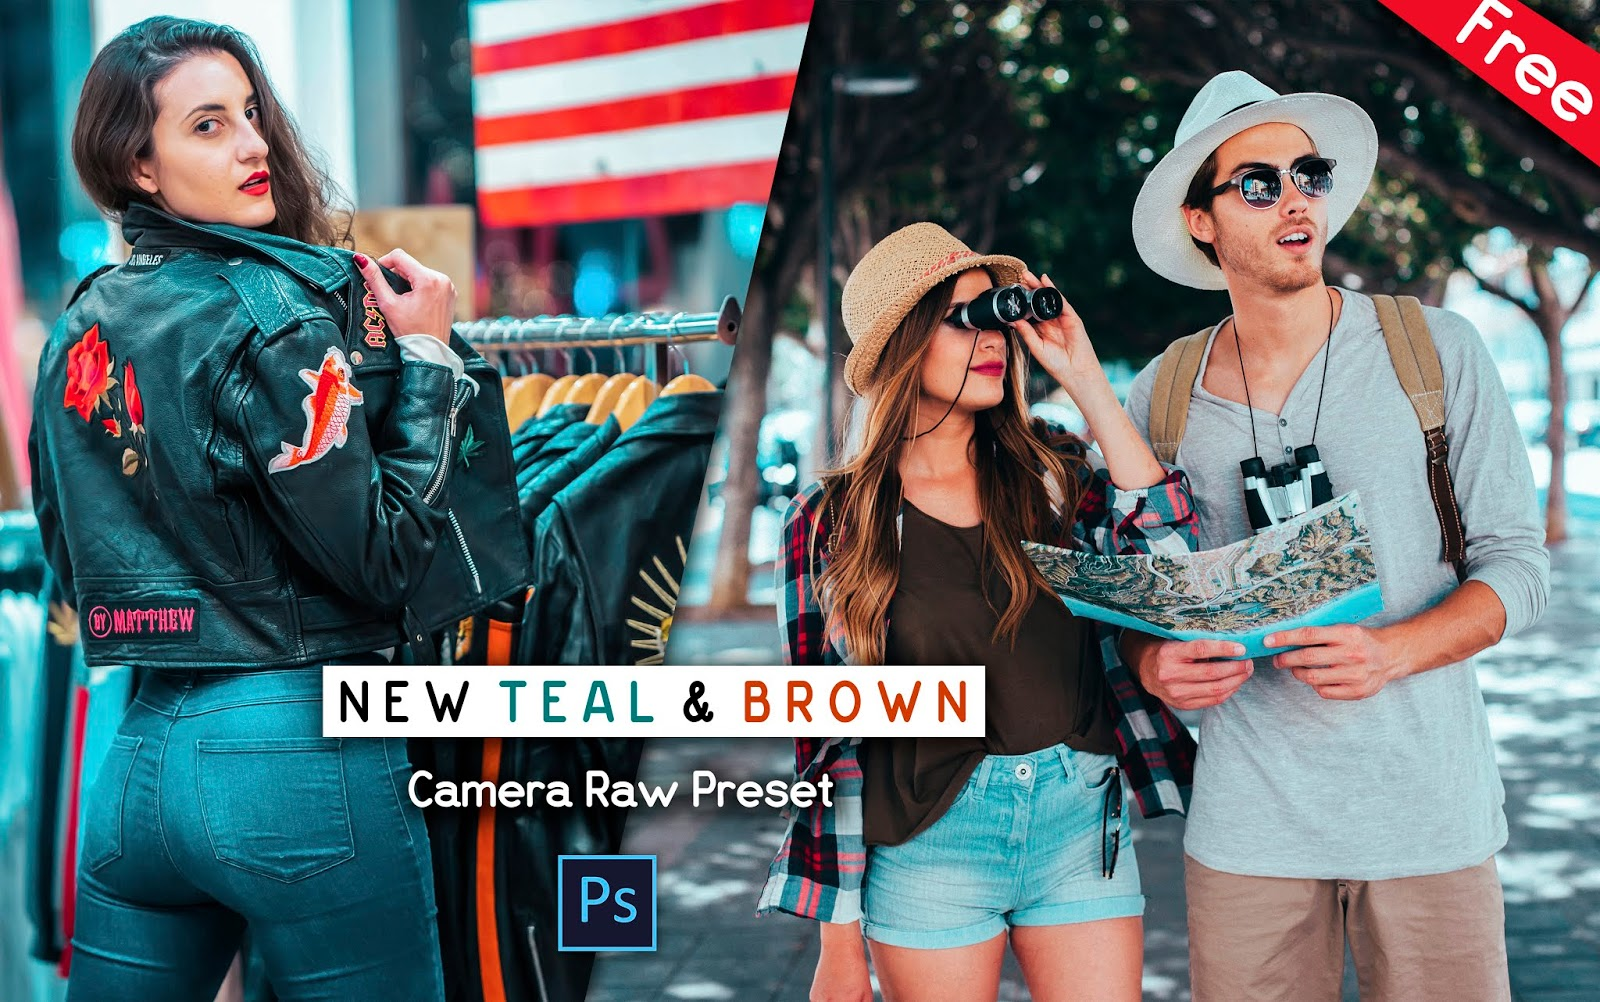 Download New Teal & Brown Camera Raw Preset for Free | How to Edit New Teal & Brown in Photoshop